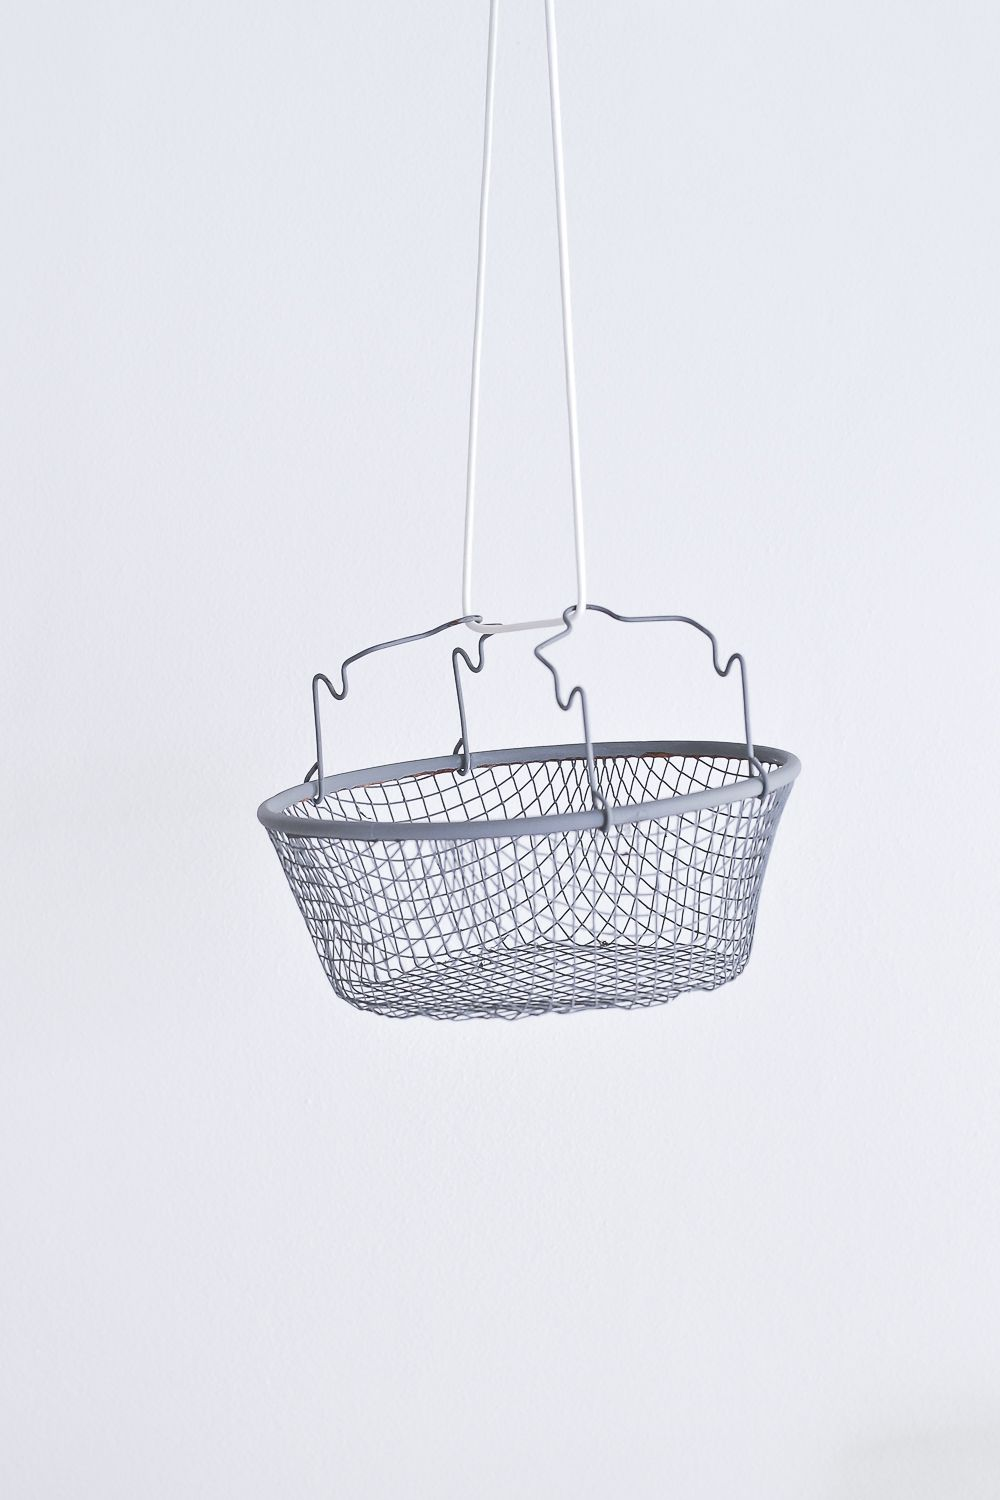 DIY Hanging fruit basket empty